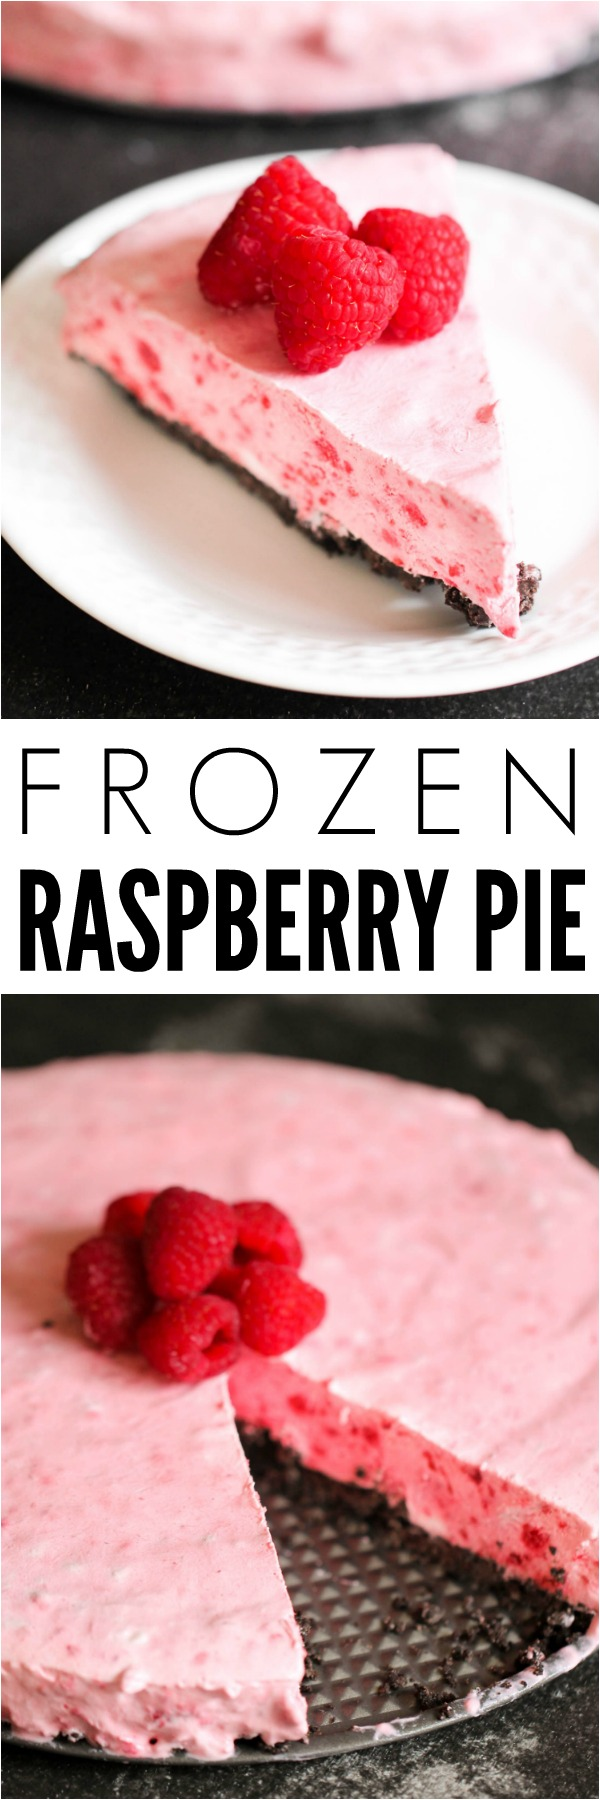 Frozen Raspberry Pie Slice on a white plate topped with fresh raspberries